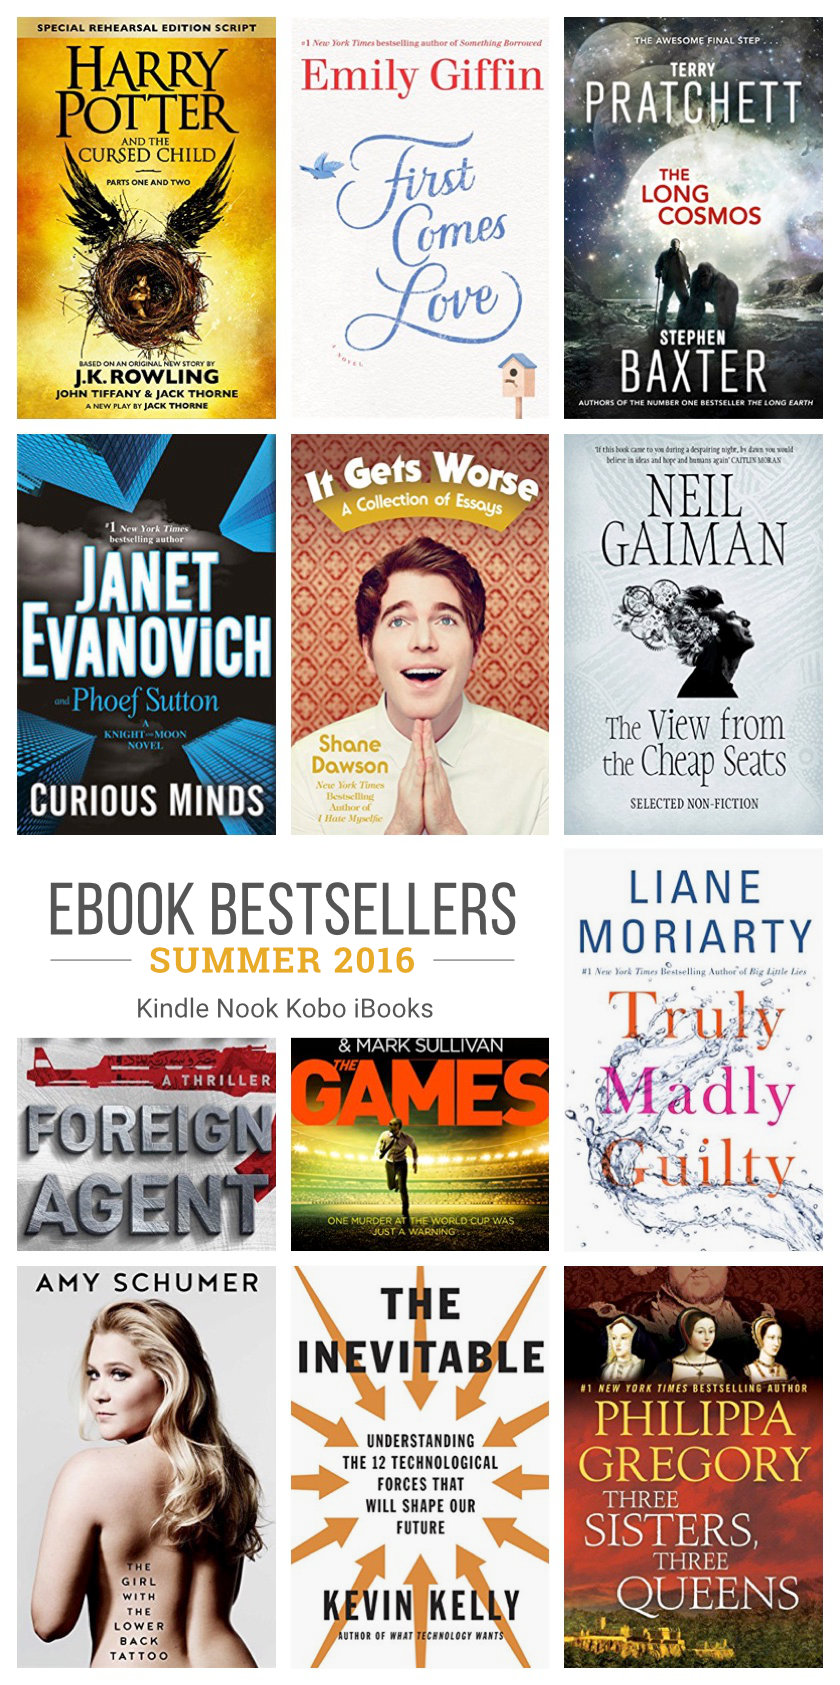 Must-read ebook bestsellers for your summer reading list 2016